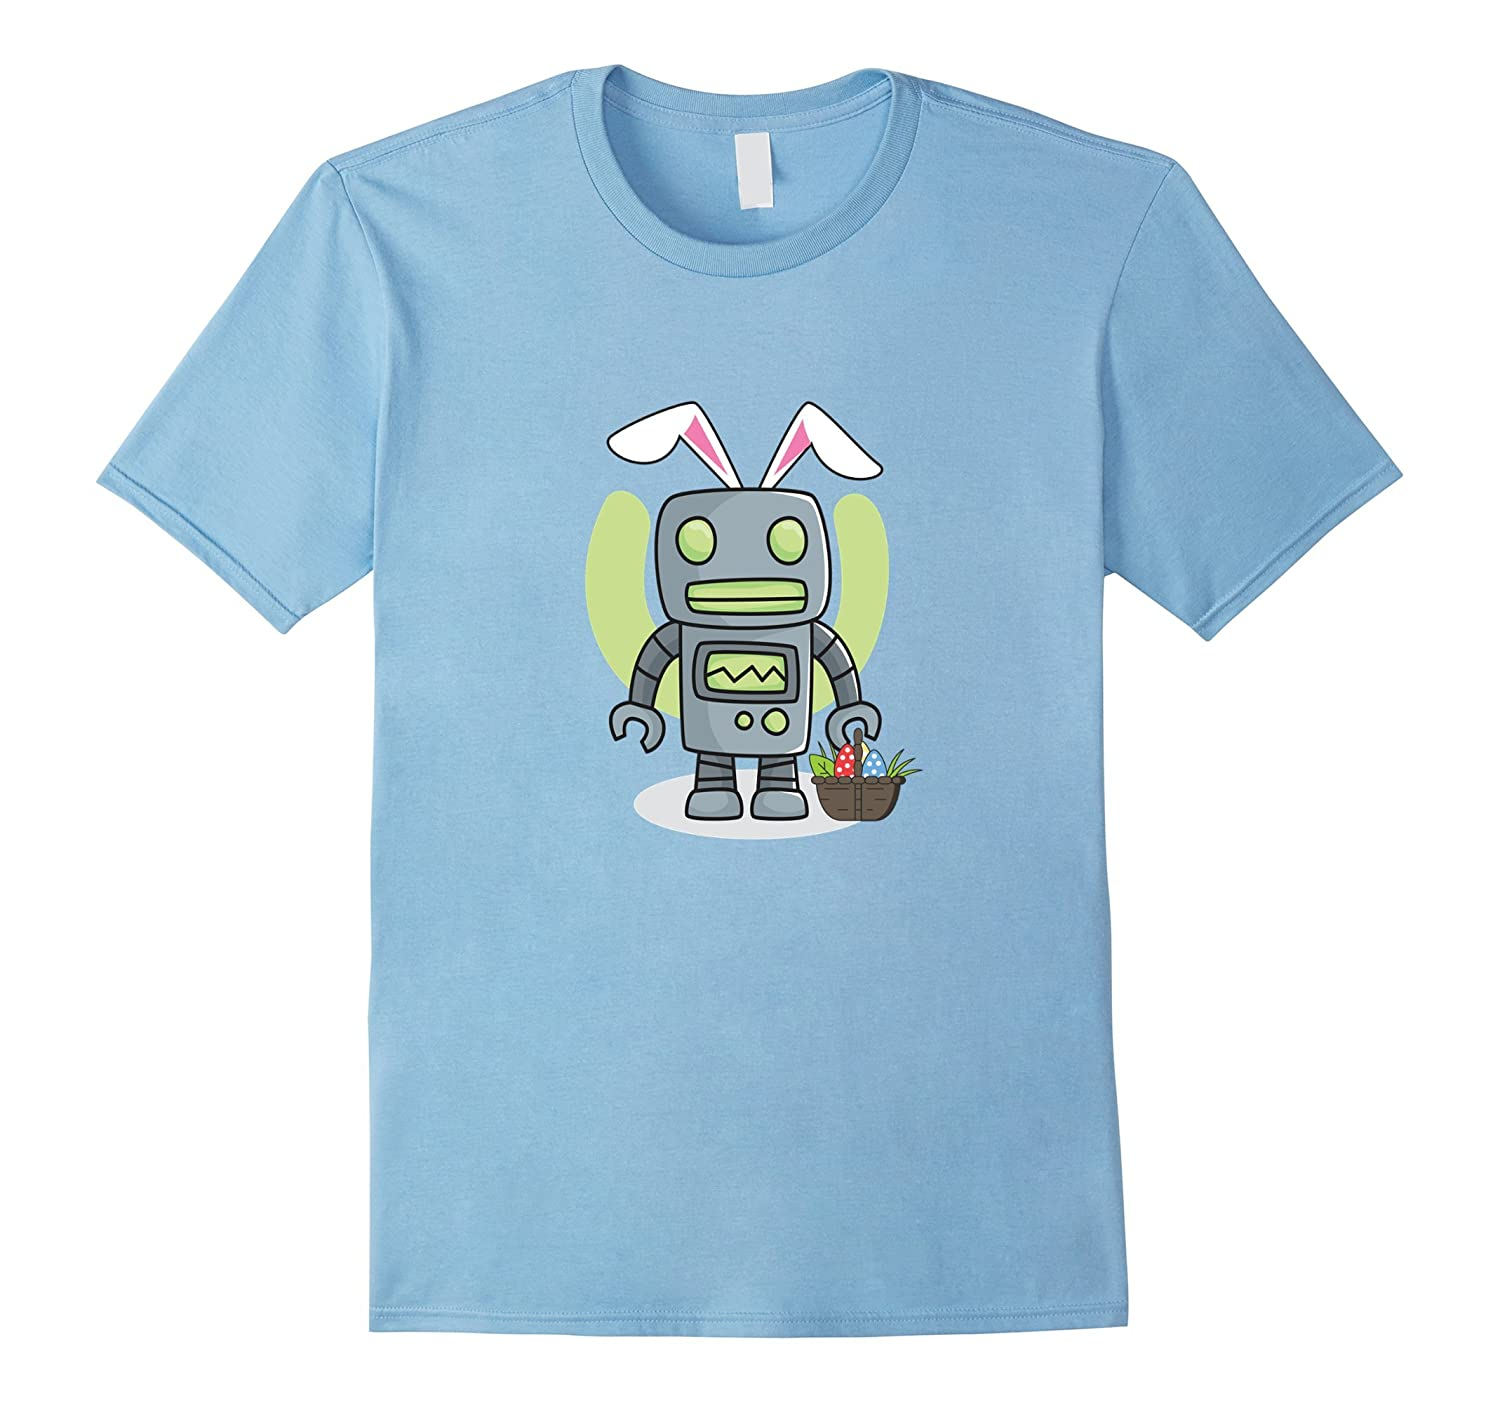 ca18a666 Robot Easter Bunny Funny T shirt for Kids Boys Girls Wome-TD – Teedep